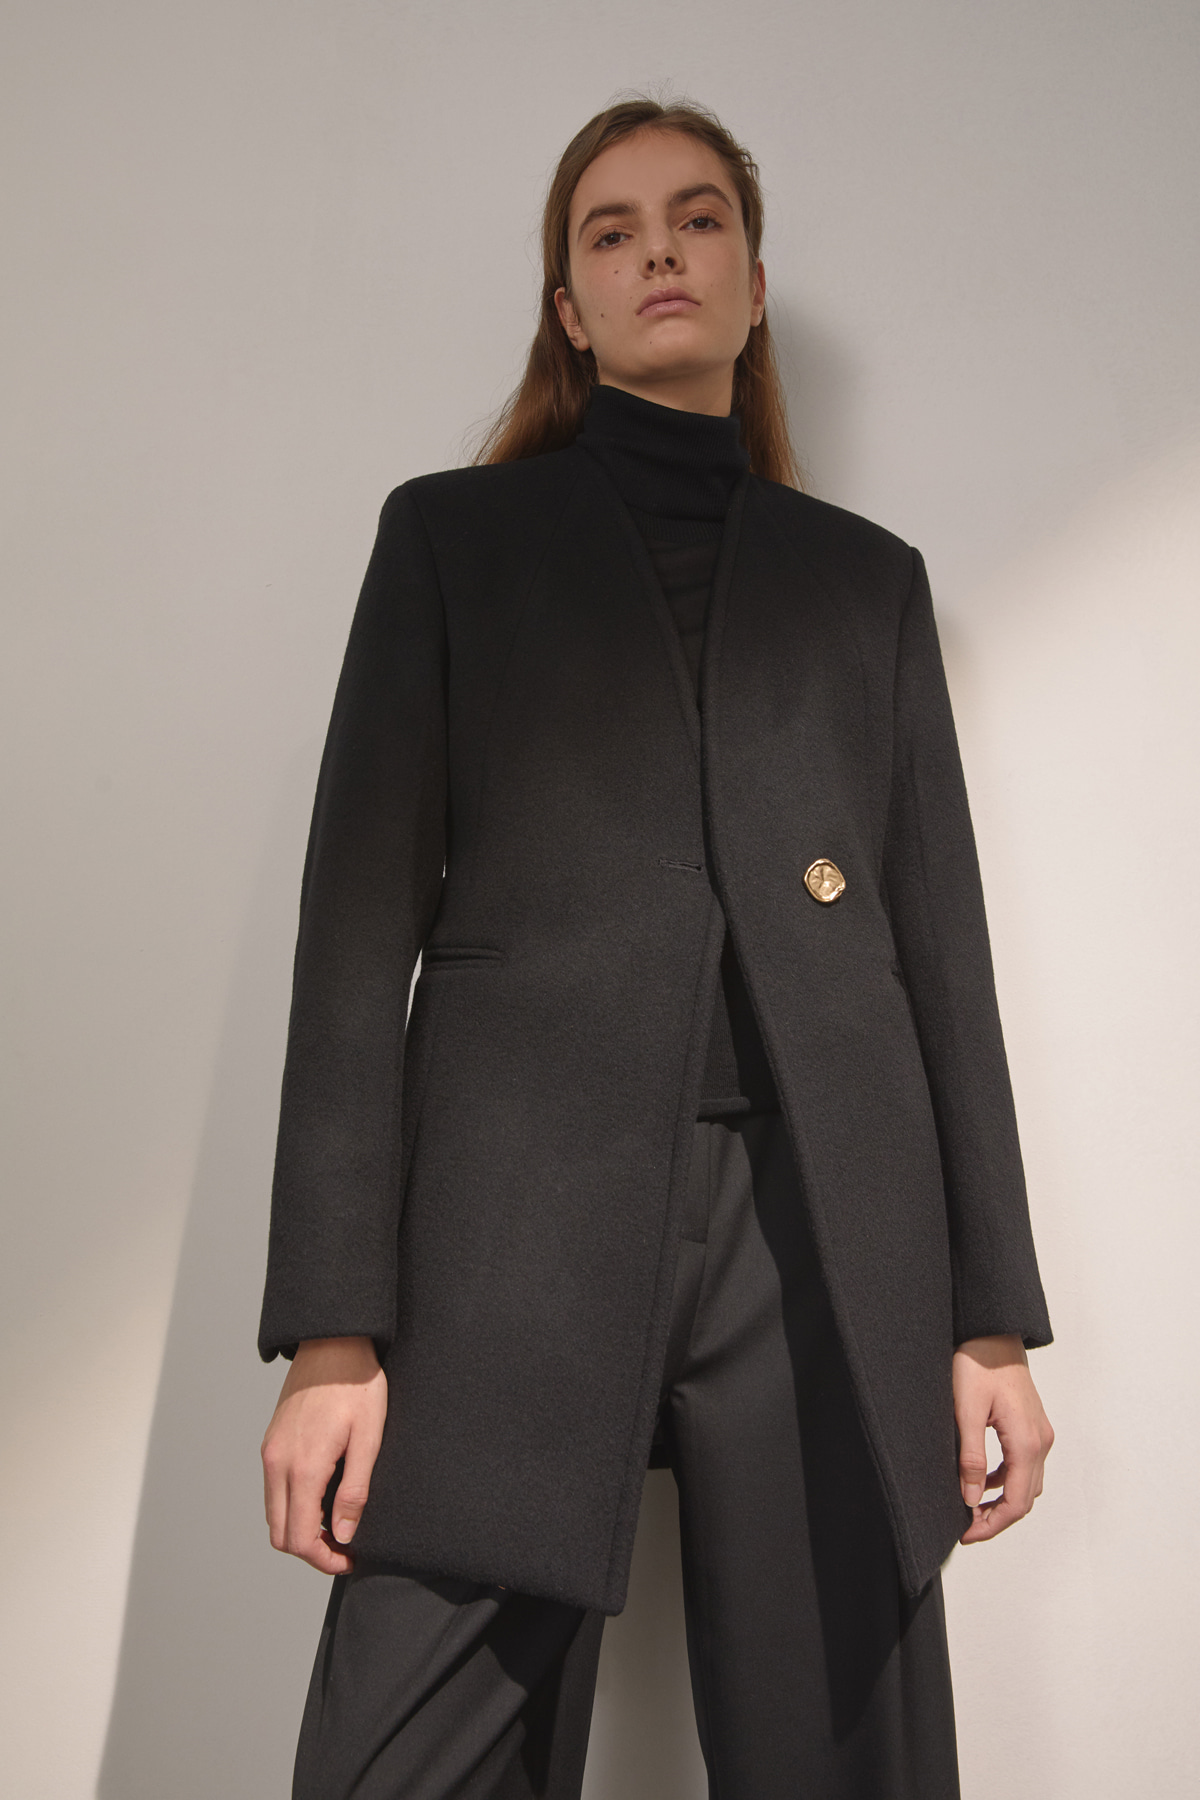 DEMERE COLLARLESS BELTED JACKET (BLACK)